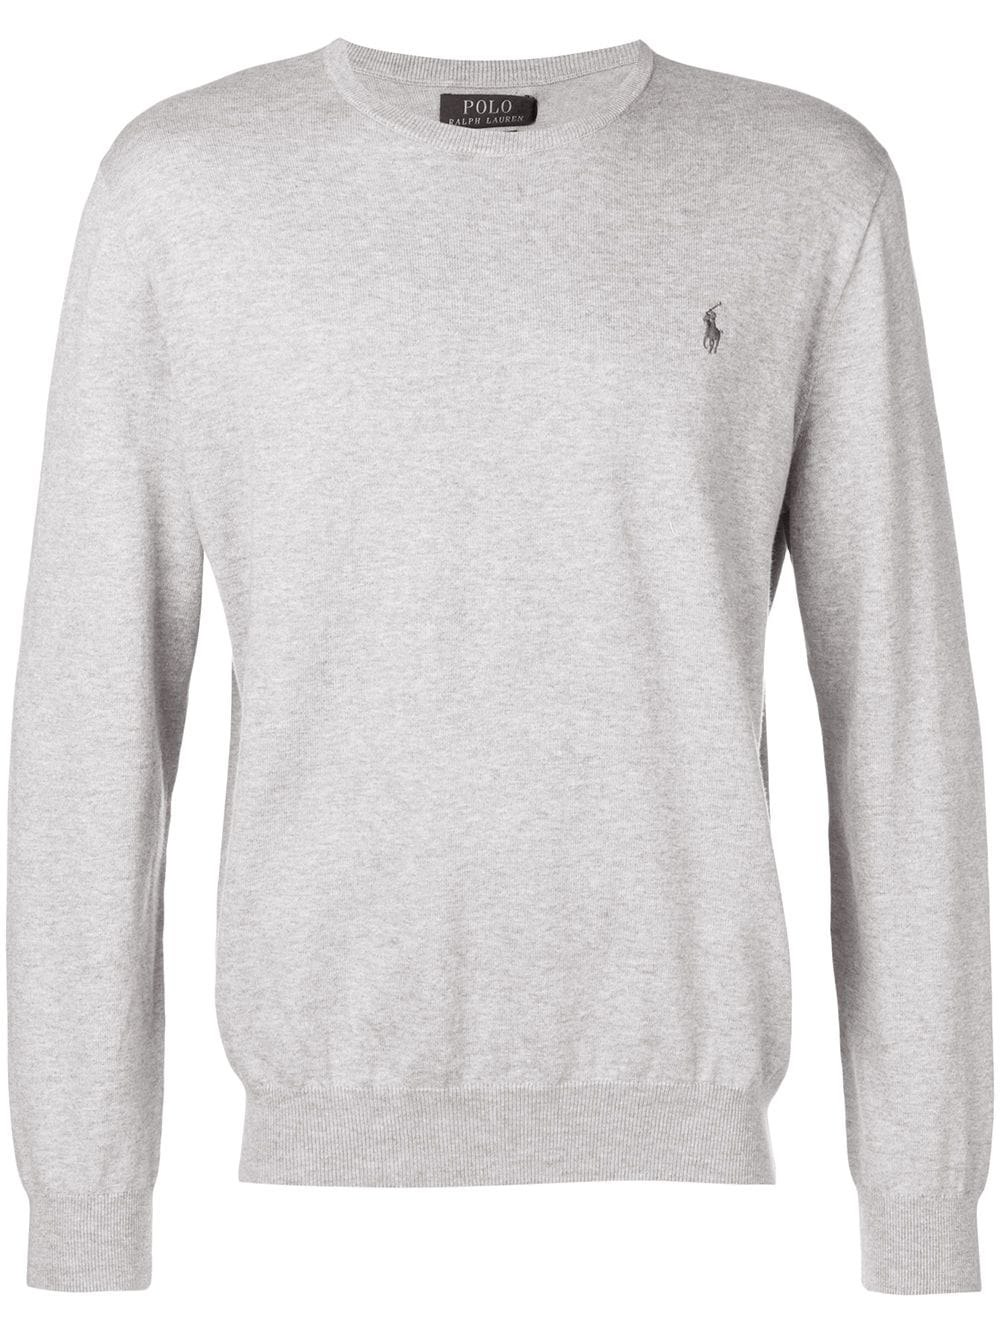 Polo Ralph Lauren Herren Pullover Pima Cotton Pony Sweater 710684957003 Ebay